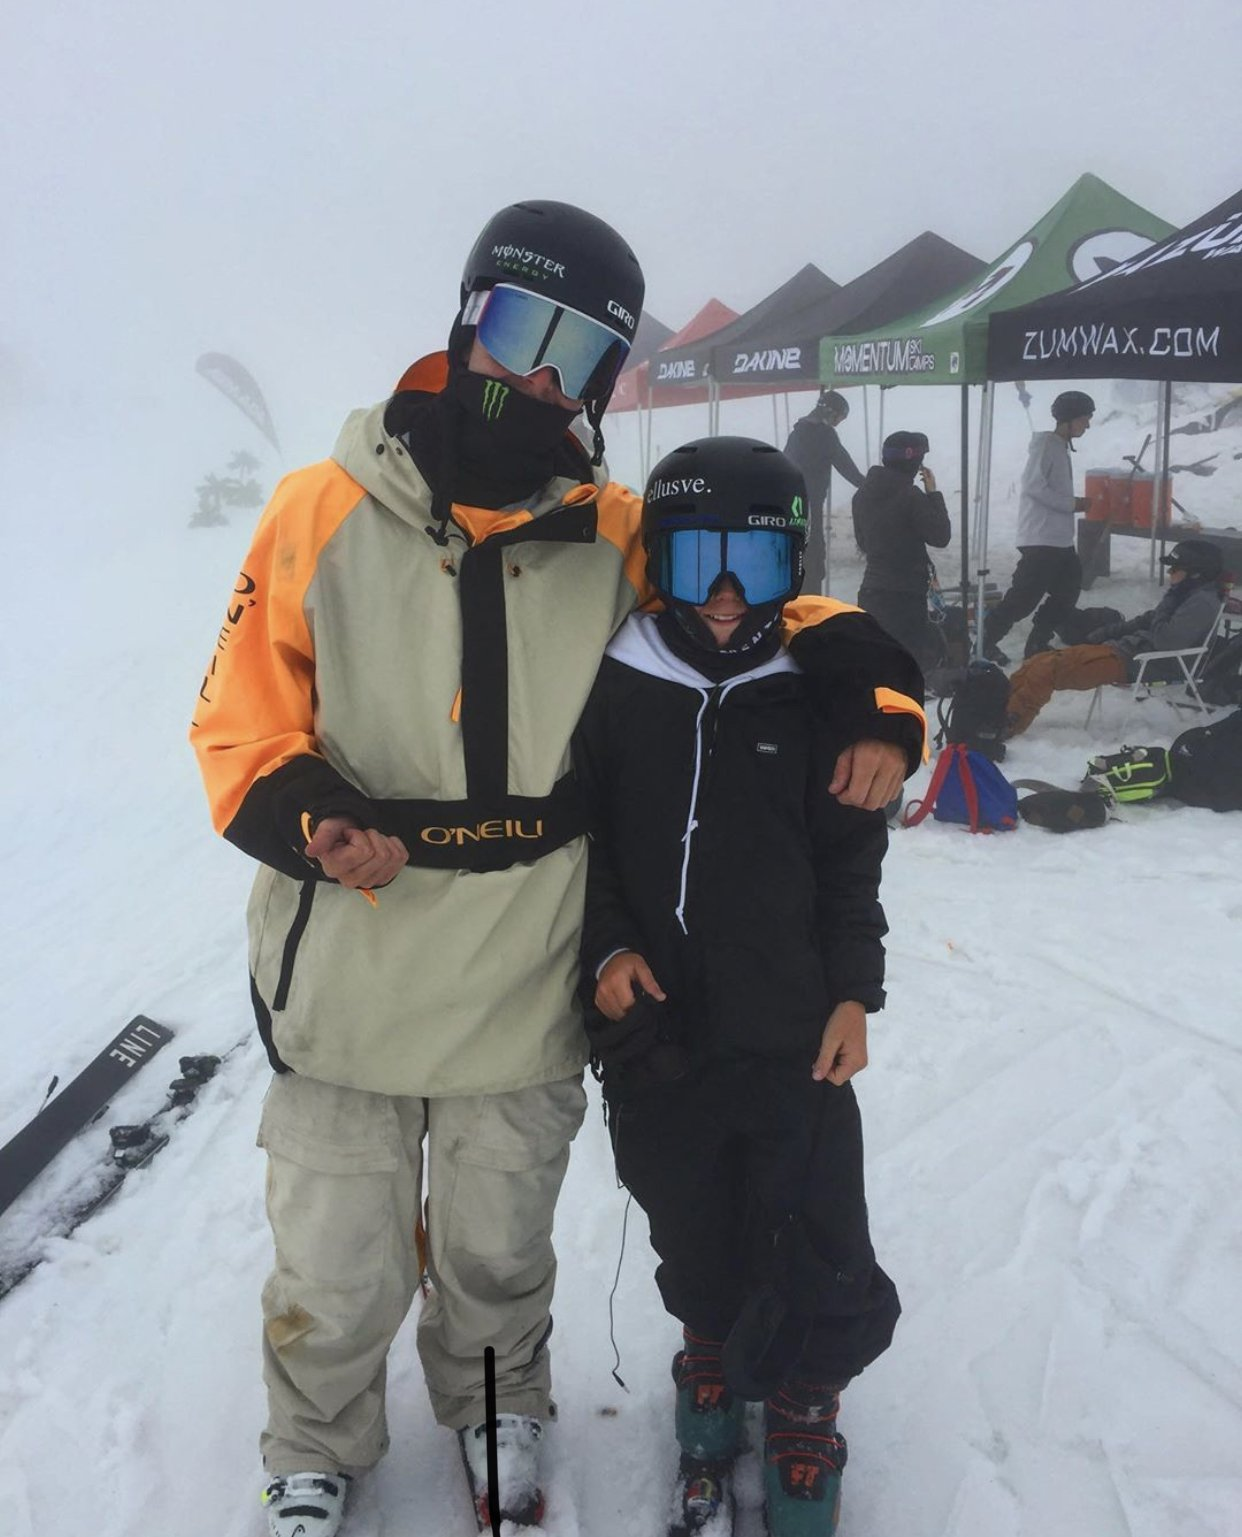 Meet my favourite ski at momentum camps this year Evan mceachran